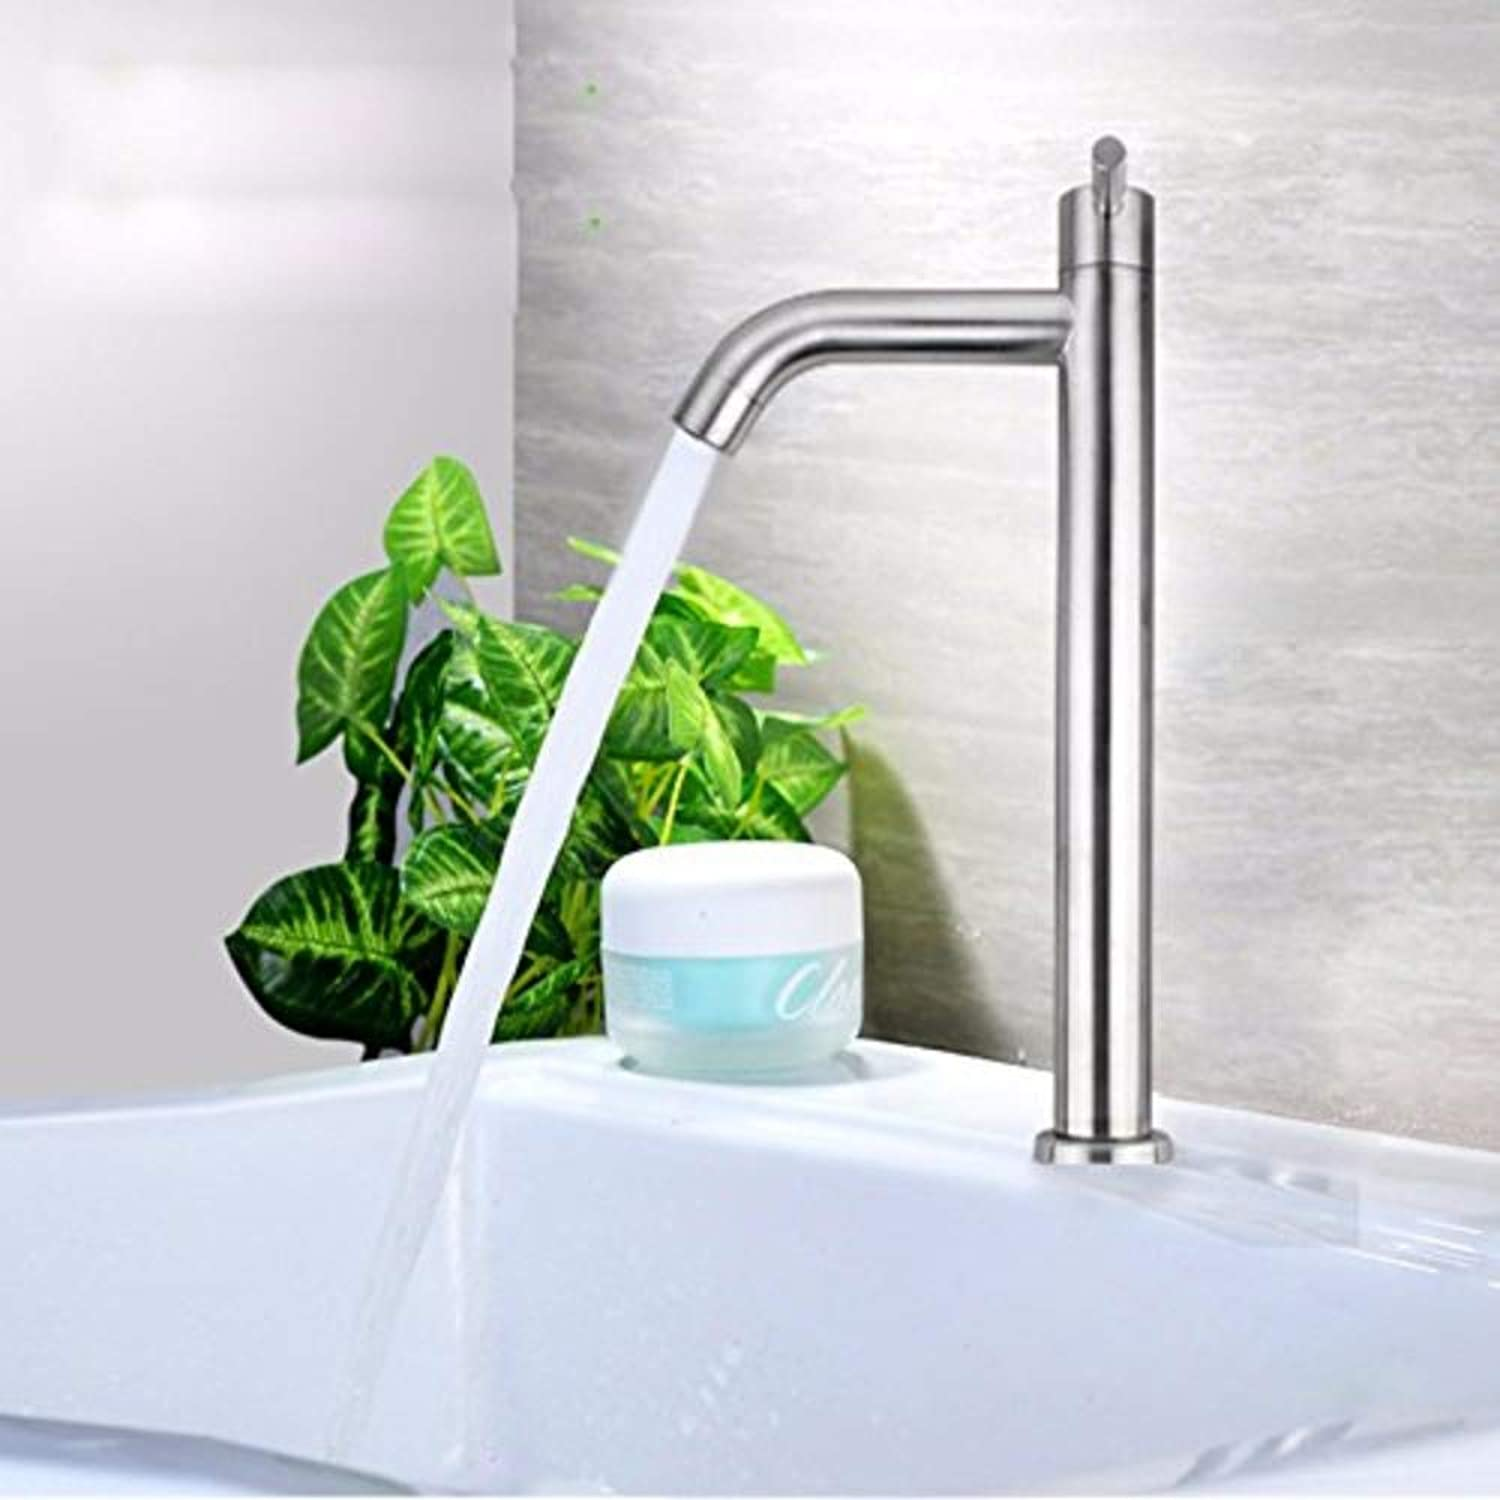 Water Tap Stainless Steel Single Cold Modern Taps Kitchen Brass Faucet Bathroom Sink Basin Waterfall Tap Mixer Water Washroom Bath Tub Shower